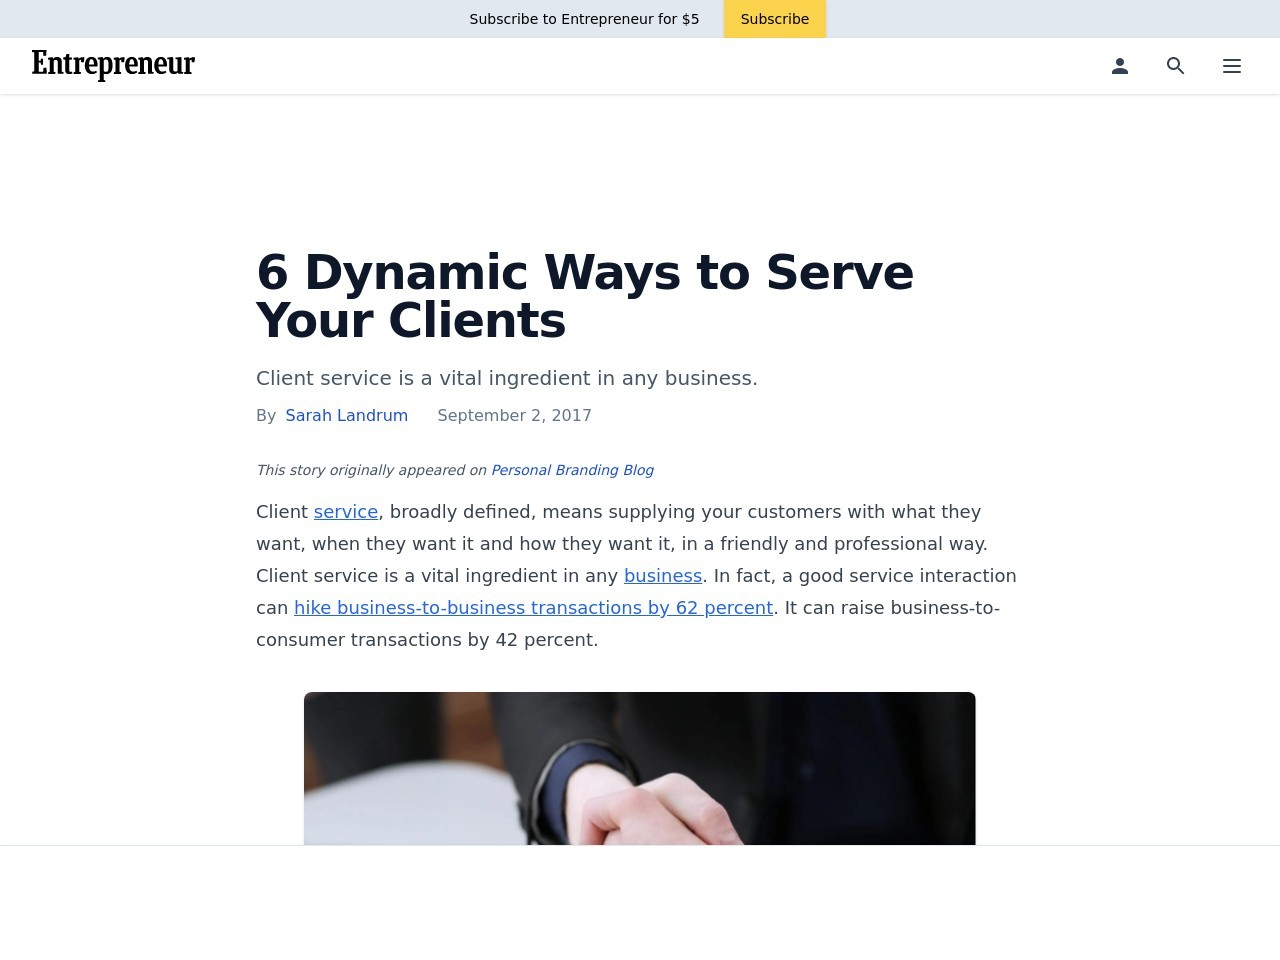 6 Dynamic Ways to Serve Your Clients